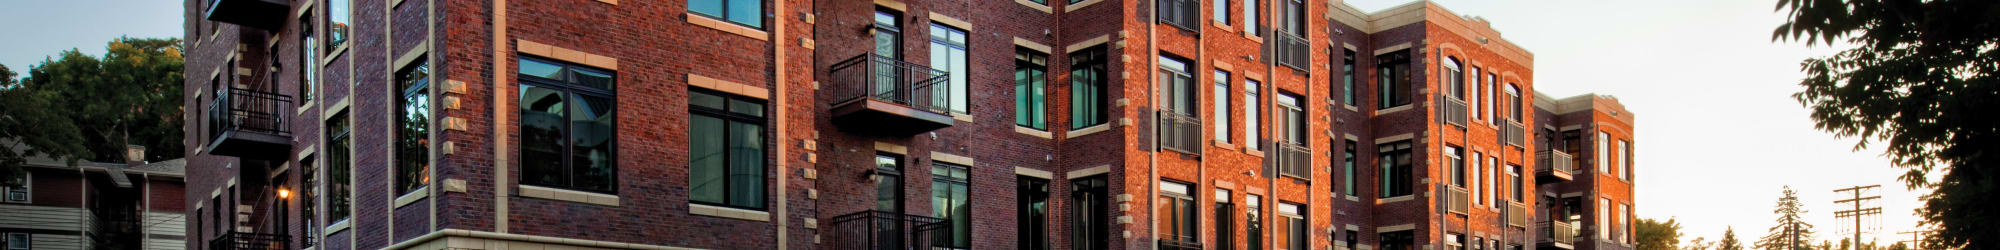 Schedule a Tour at Keystone Apartments in Madison, Wisconsin